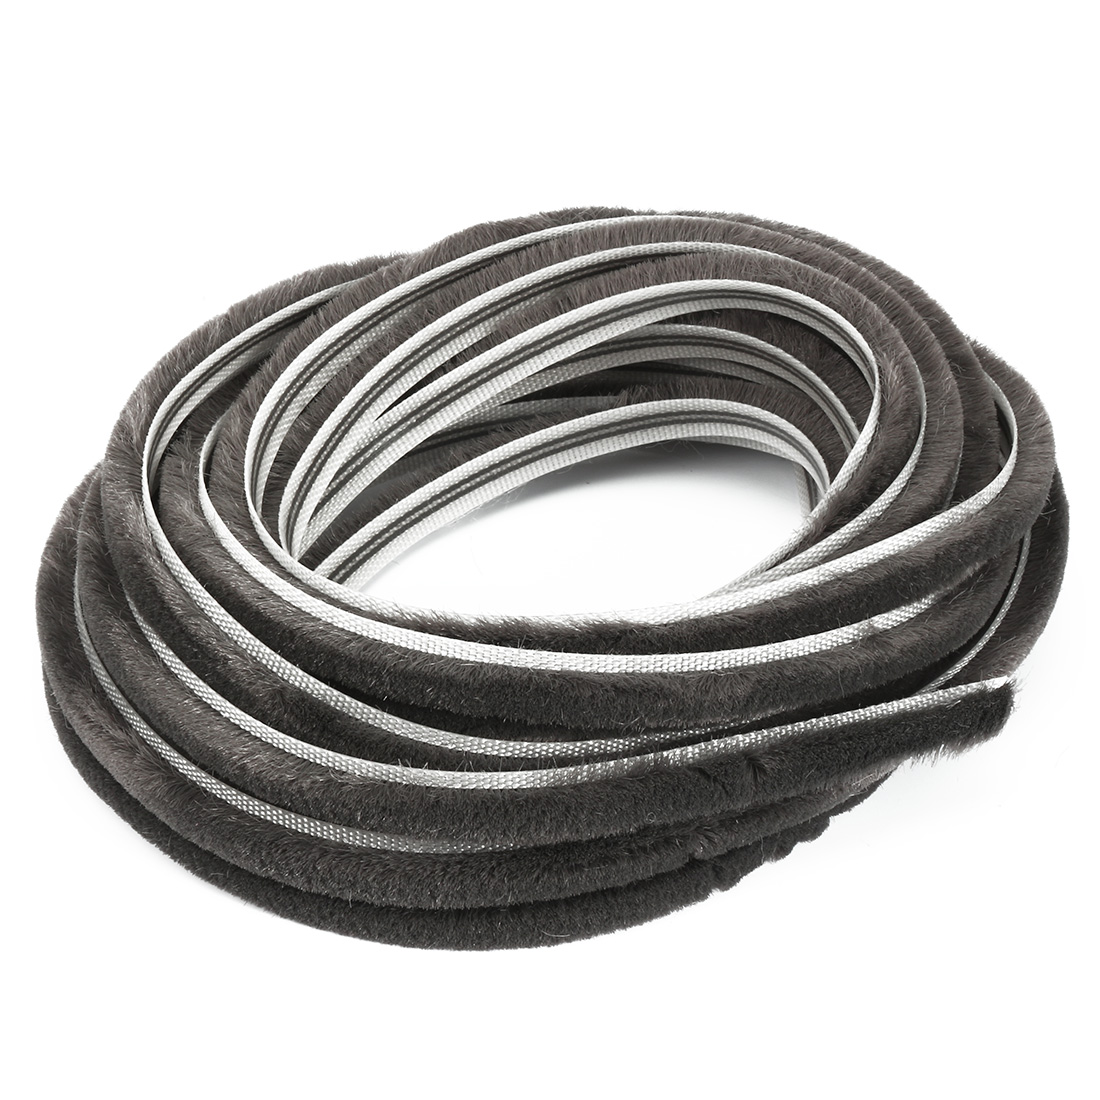 Window Weather Seal Strip 5/16 Inch Width x 1/4-Inch Thick x 19.7 Feet Length